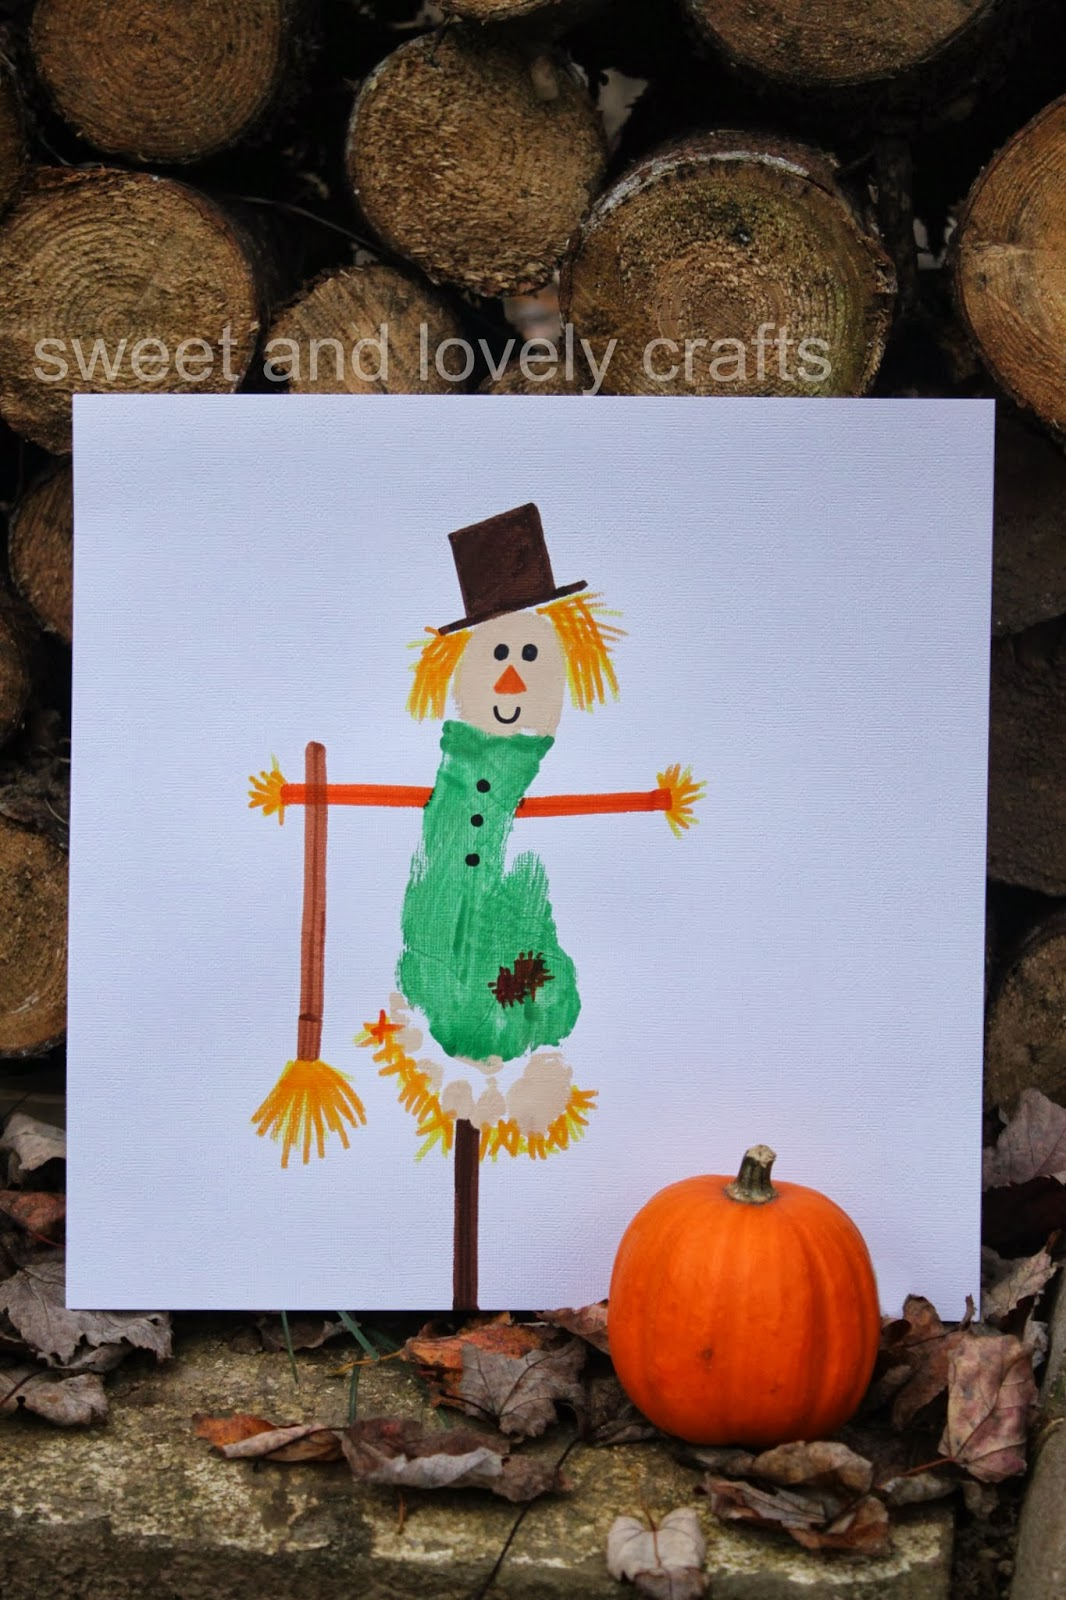 A cute idea for showing off your adorable Scarecrow Footprint craft!